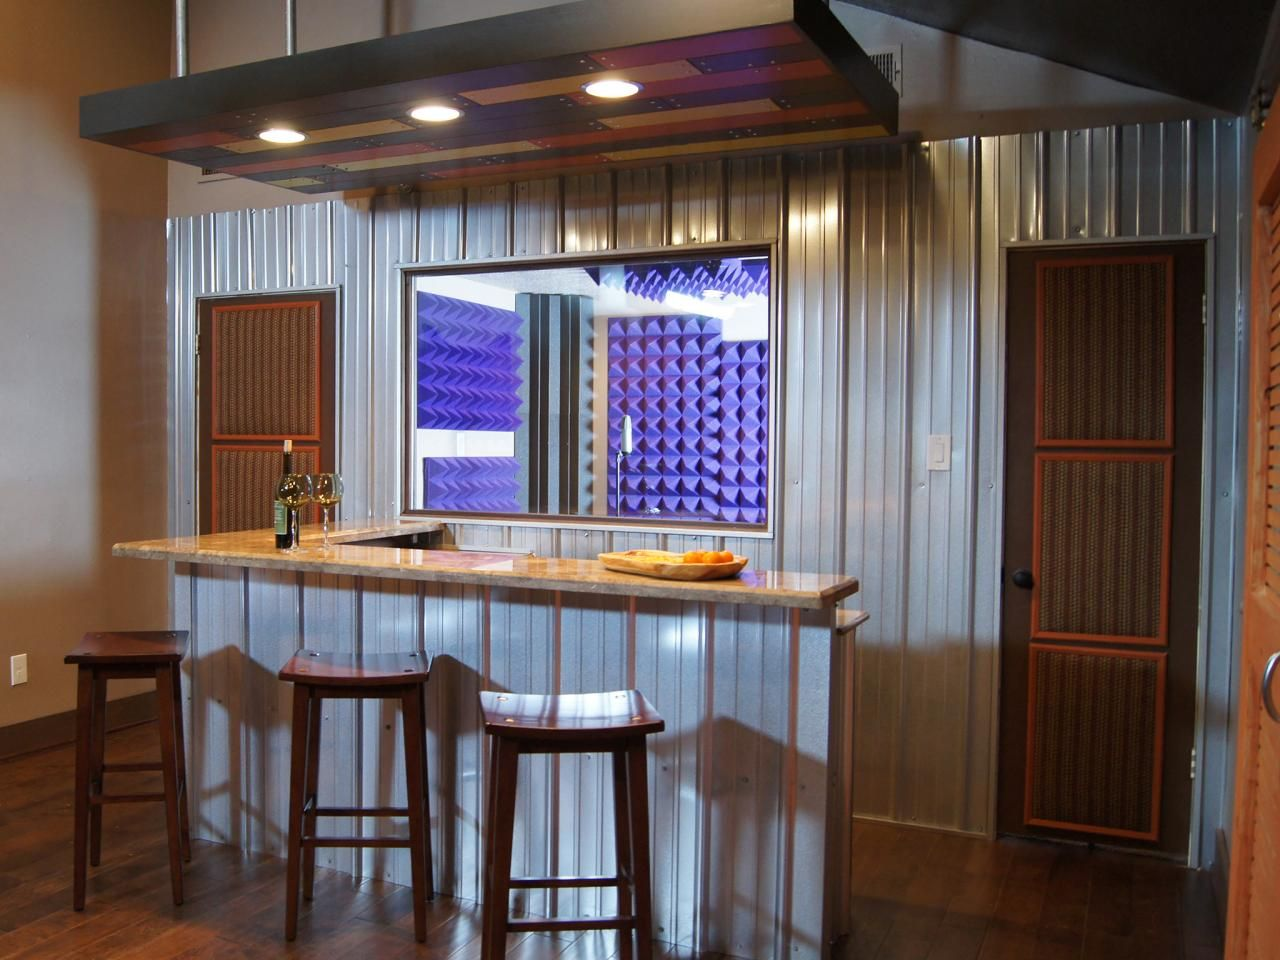 How To Decorate A Home Bar Spice Up Your Basement Bar 17 Ideas For A Beautiful Bar Space